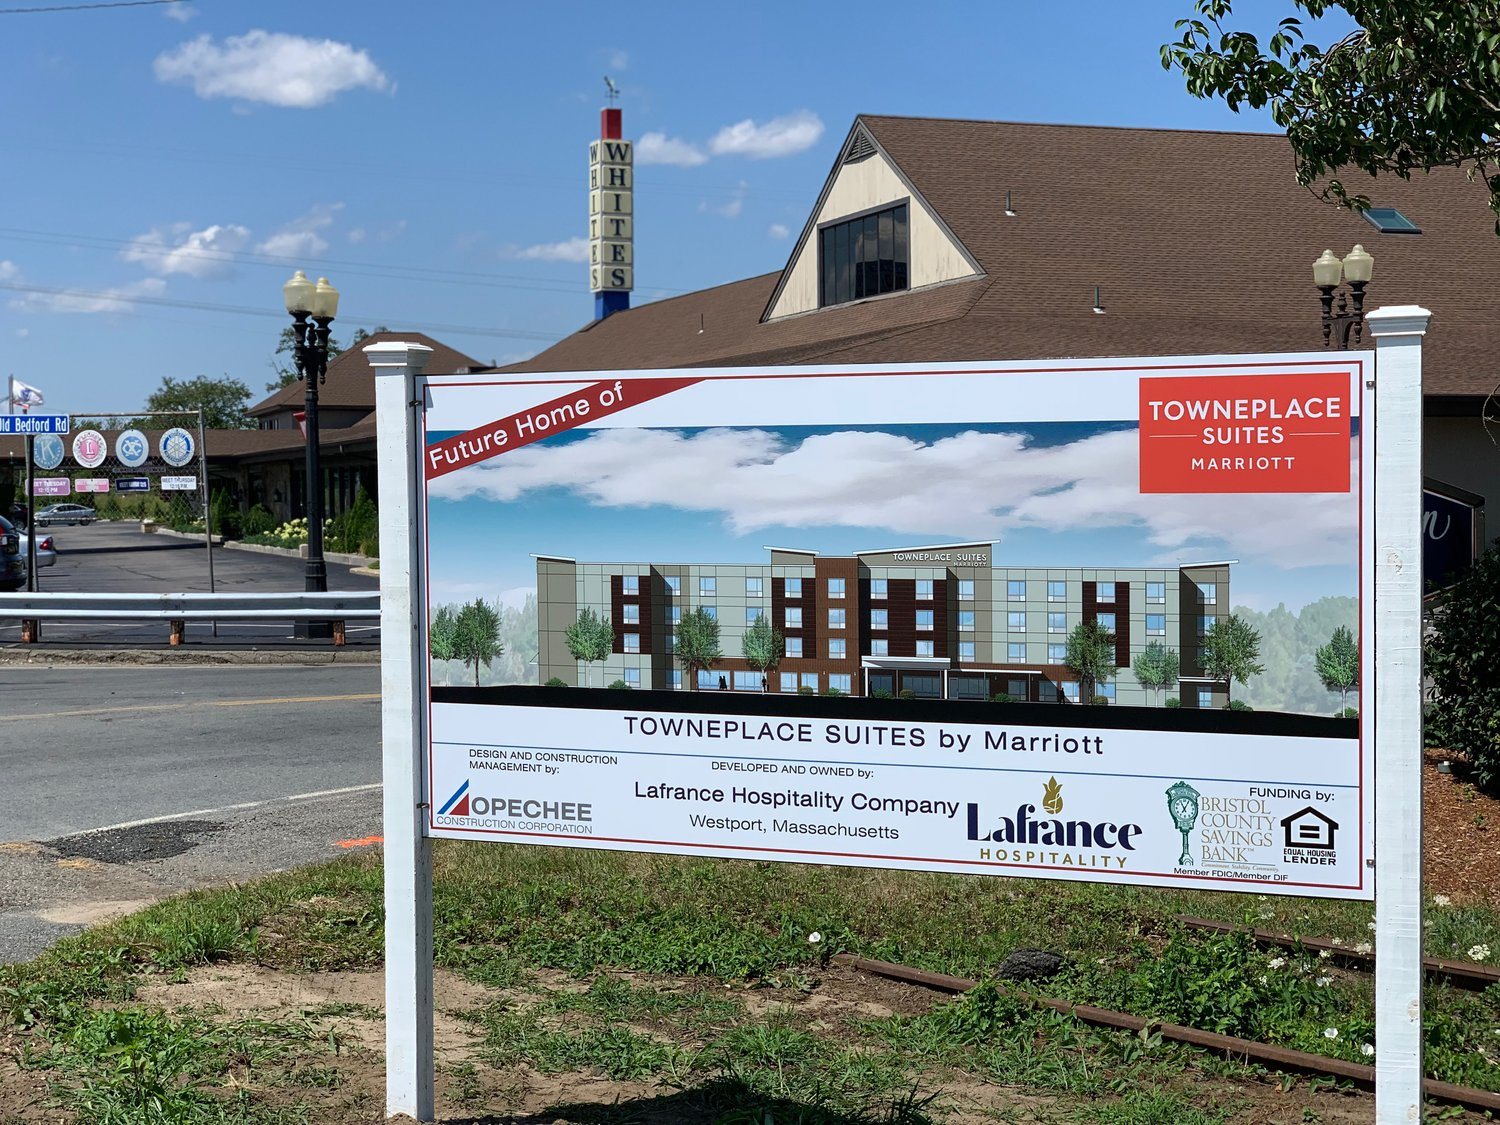 Sign announces the future home of Towneplace Suites by Marriott.